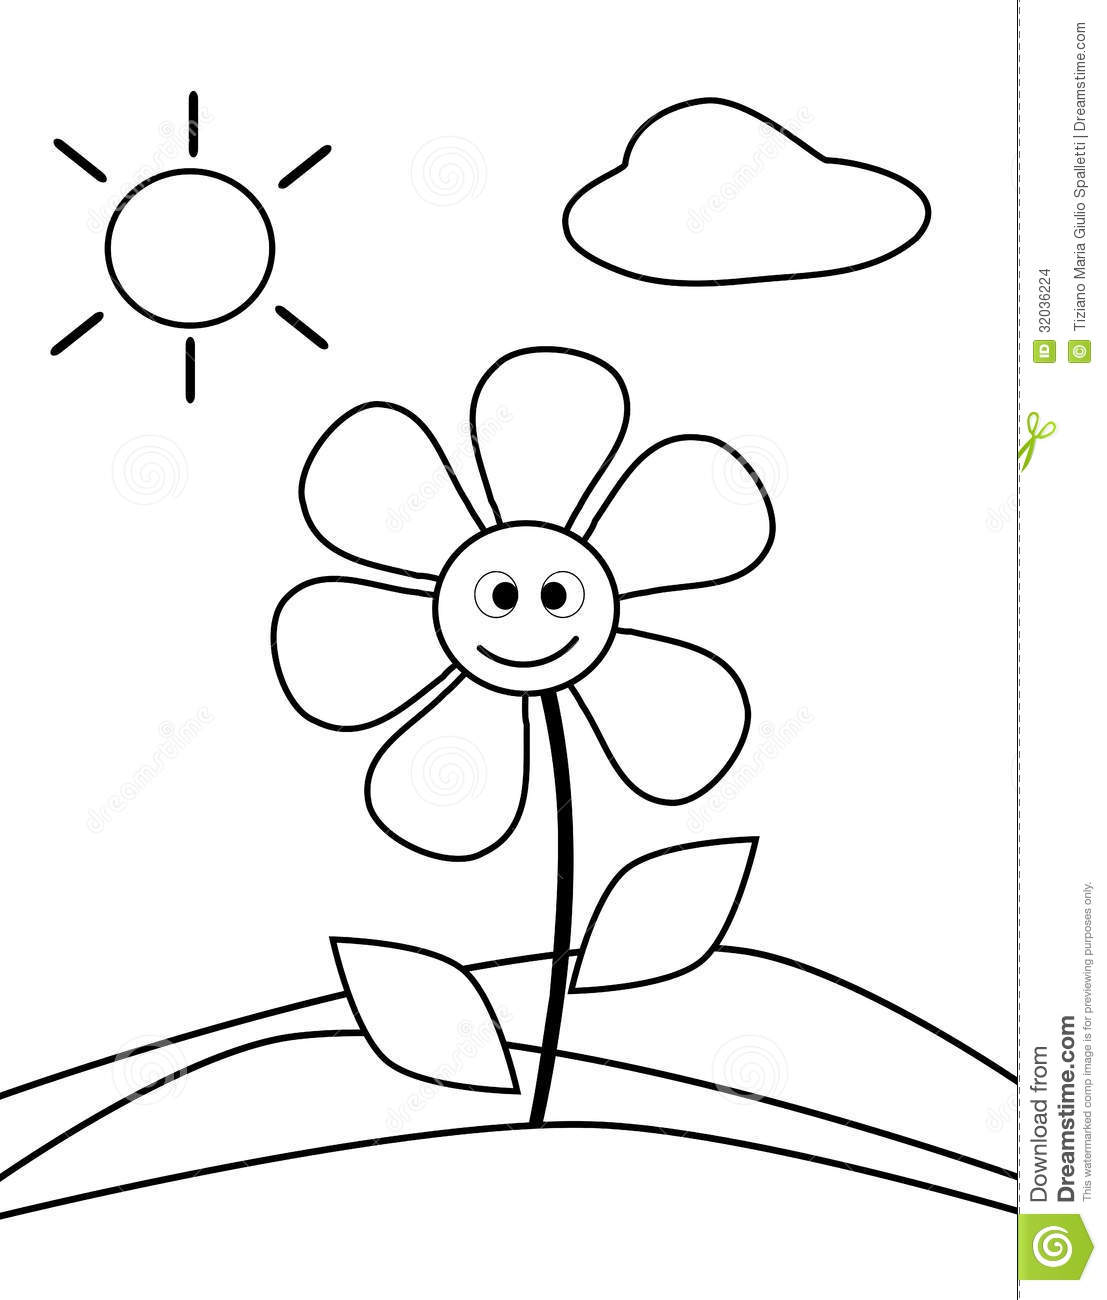 Colouring Pages 8 Year Old : Coloring flower stock images image